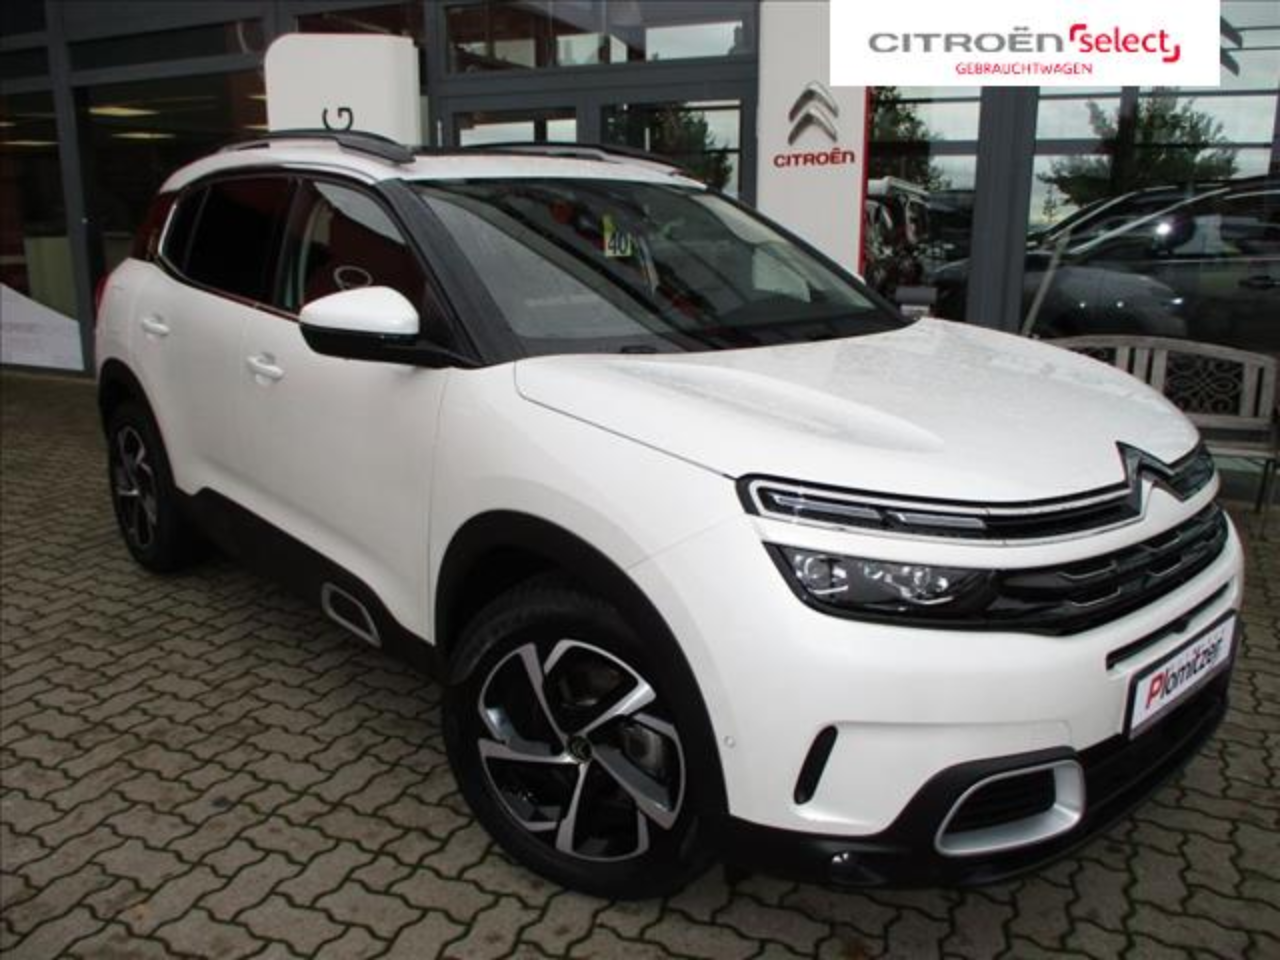 Citroën C5 Aircross Pure Tech 180 S&S EAT8 SHINE *Panoramadach*